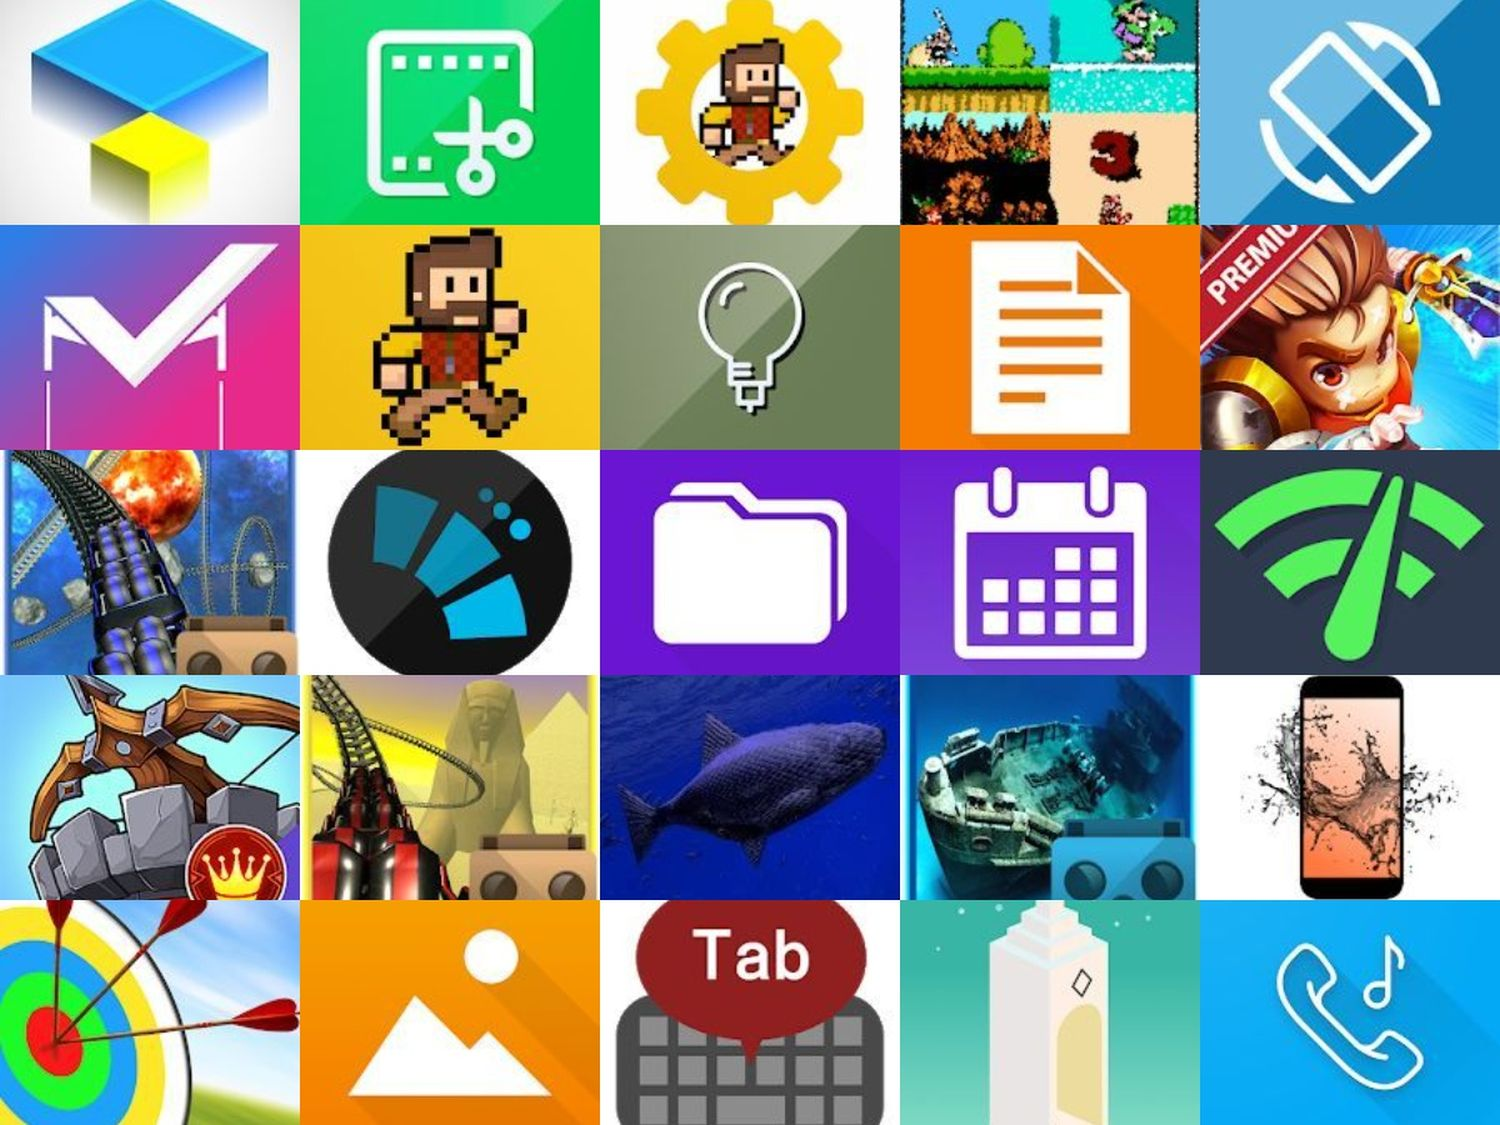 apps 05.06.2021